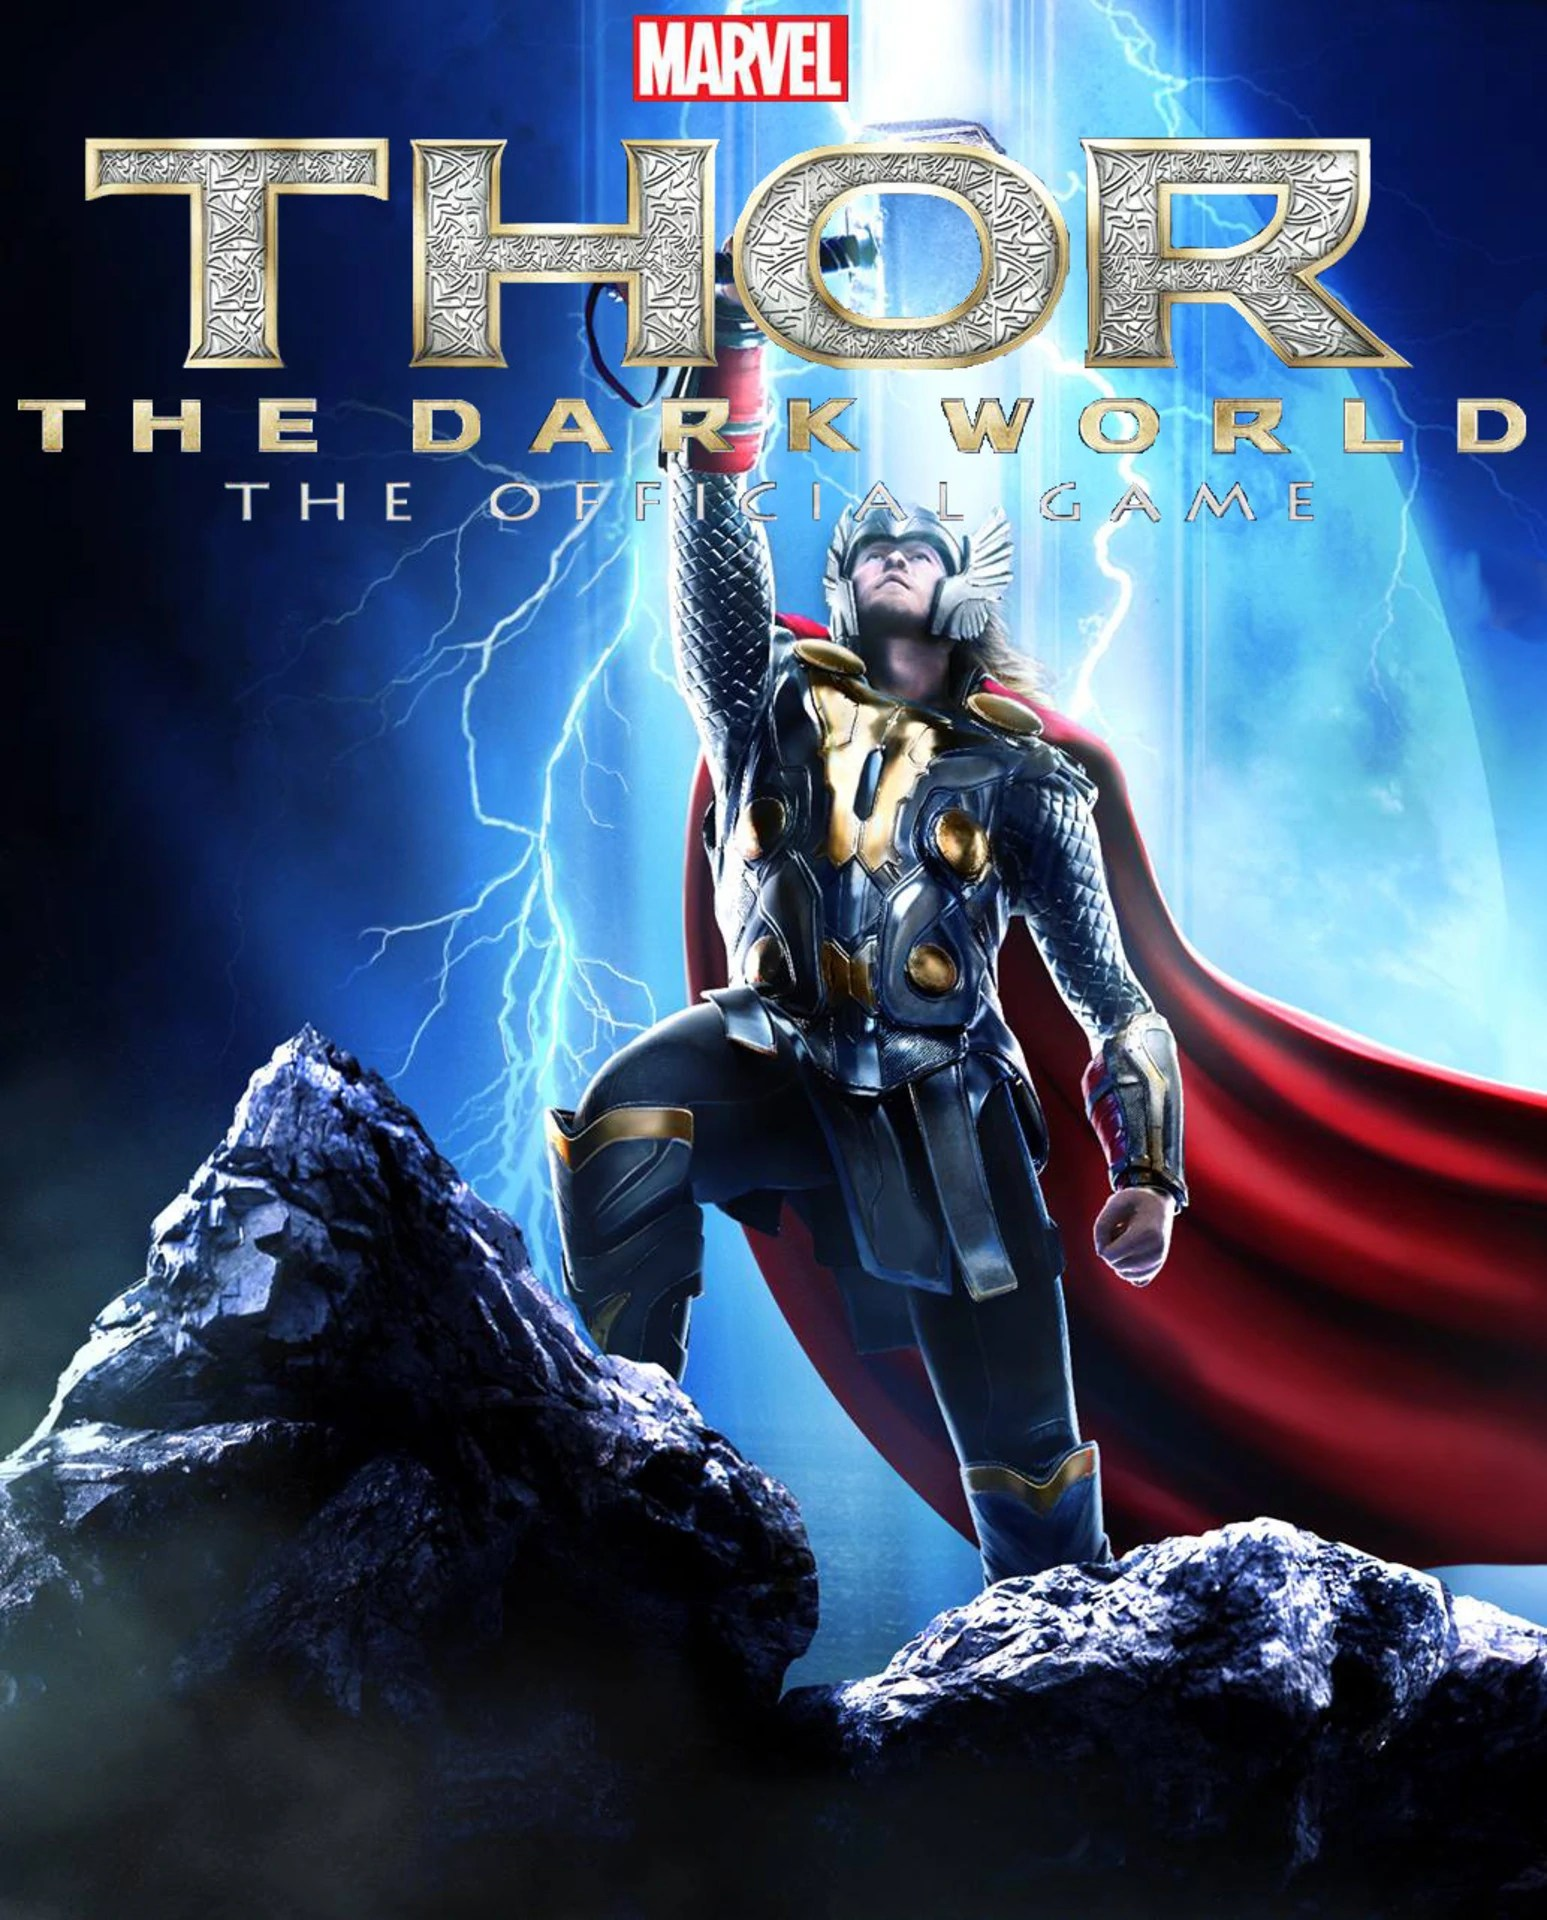 Thor The Dark World Game : world, Thor:, World, Official, Marvel, Cinematic, Universe, Fandom